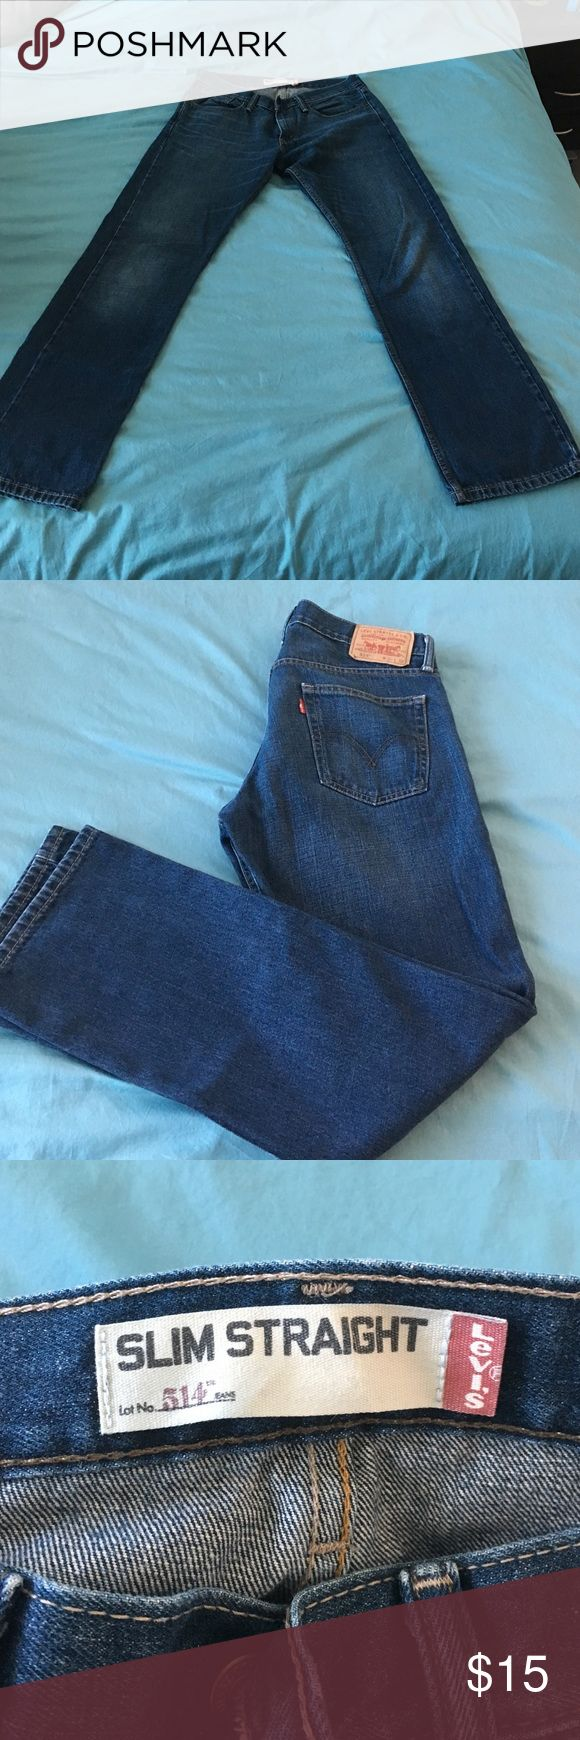 Men's Levi's 514 Slim Straight Jeans 32x32 and in great condition. Men's Levi's 514 jeans Levi's Jeans Straight Leg